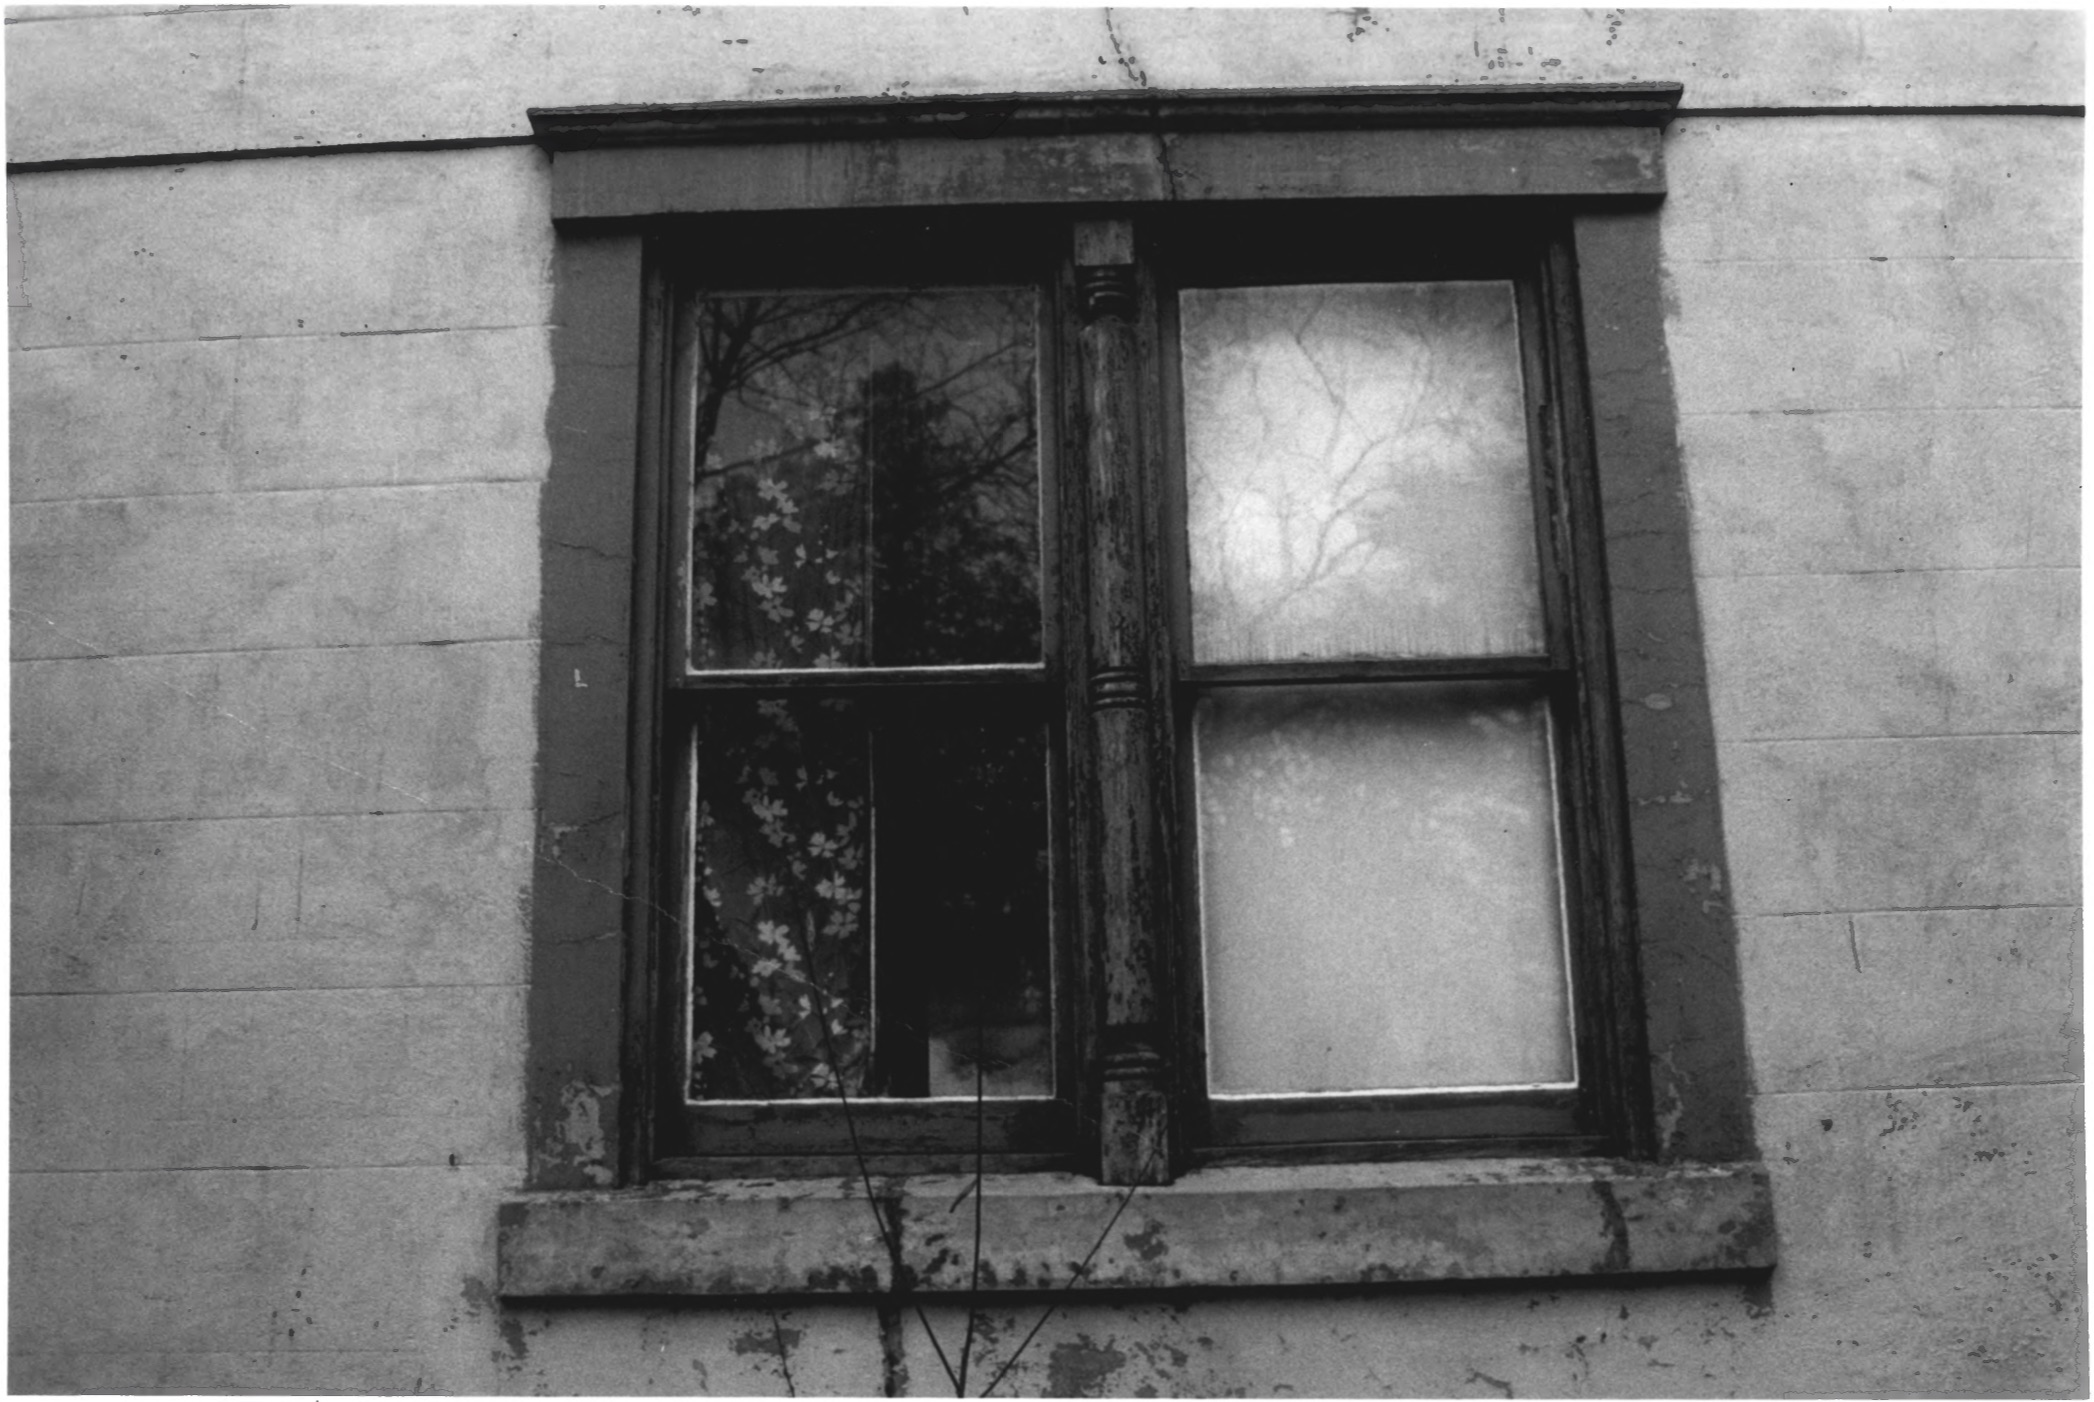 Closeup of Uniquely Crafted Windows on the Octagon House in August of 1979 by Stephen H. Hirschberg